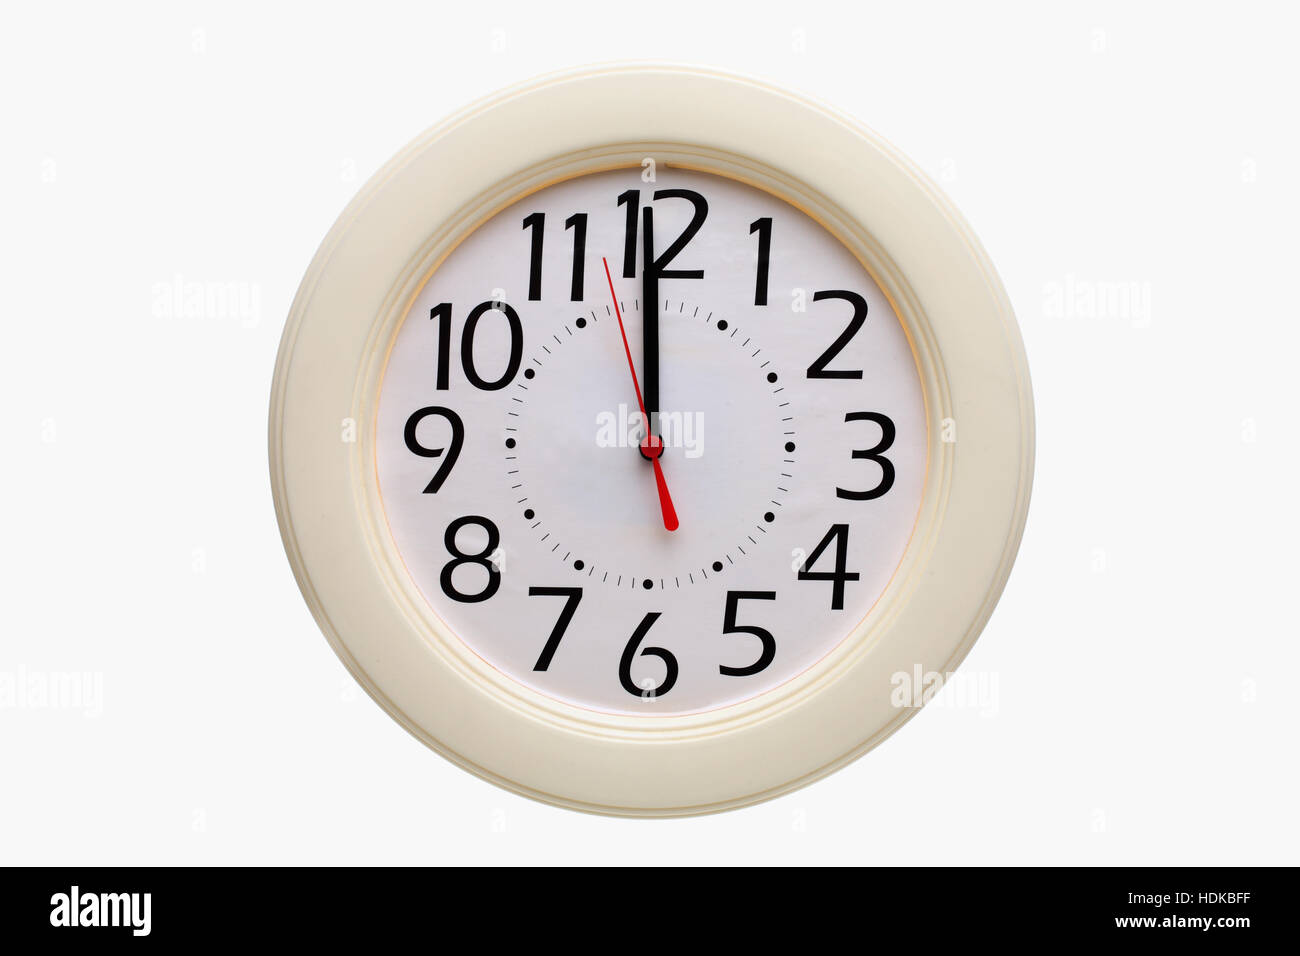 Analog wall clock 12:00 o'clock - Stock Image